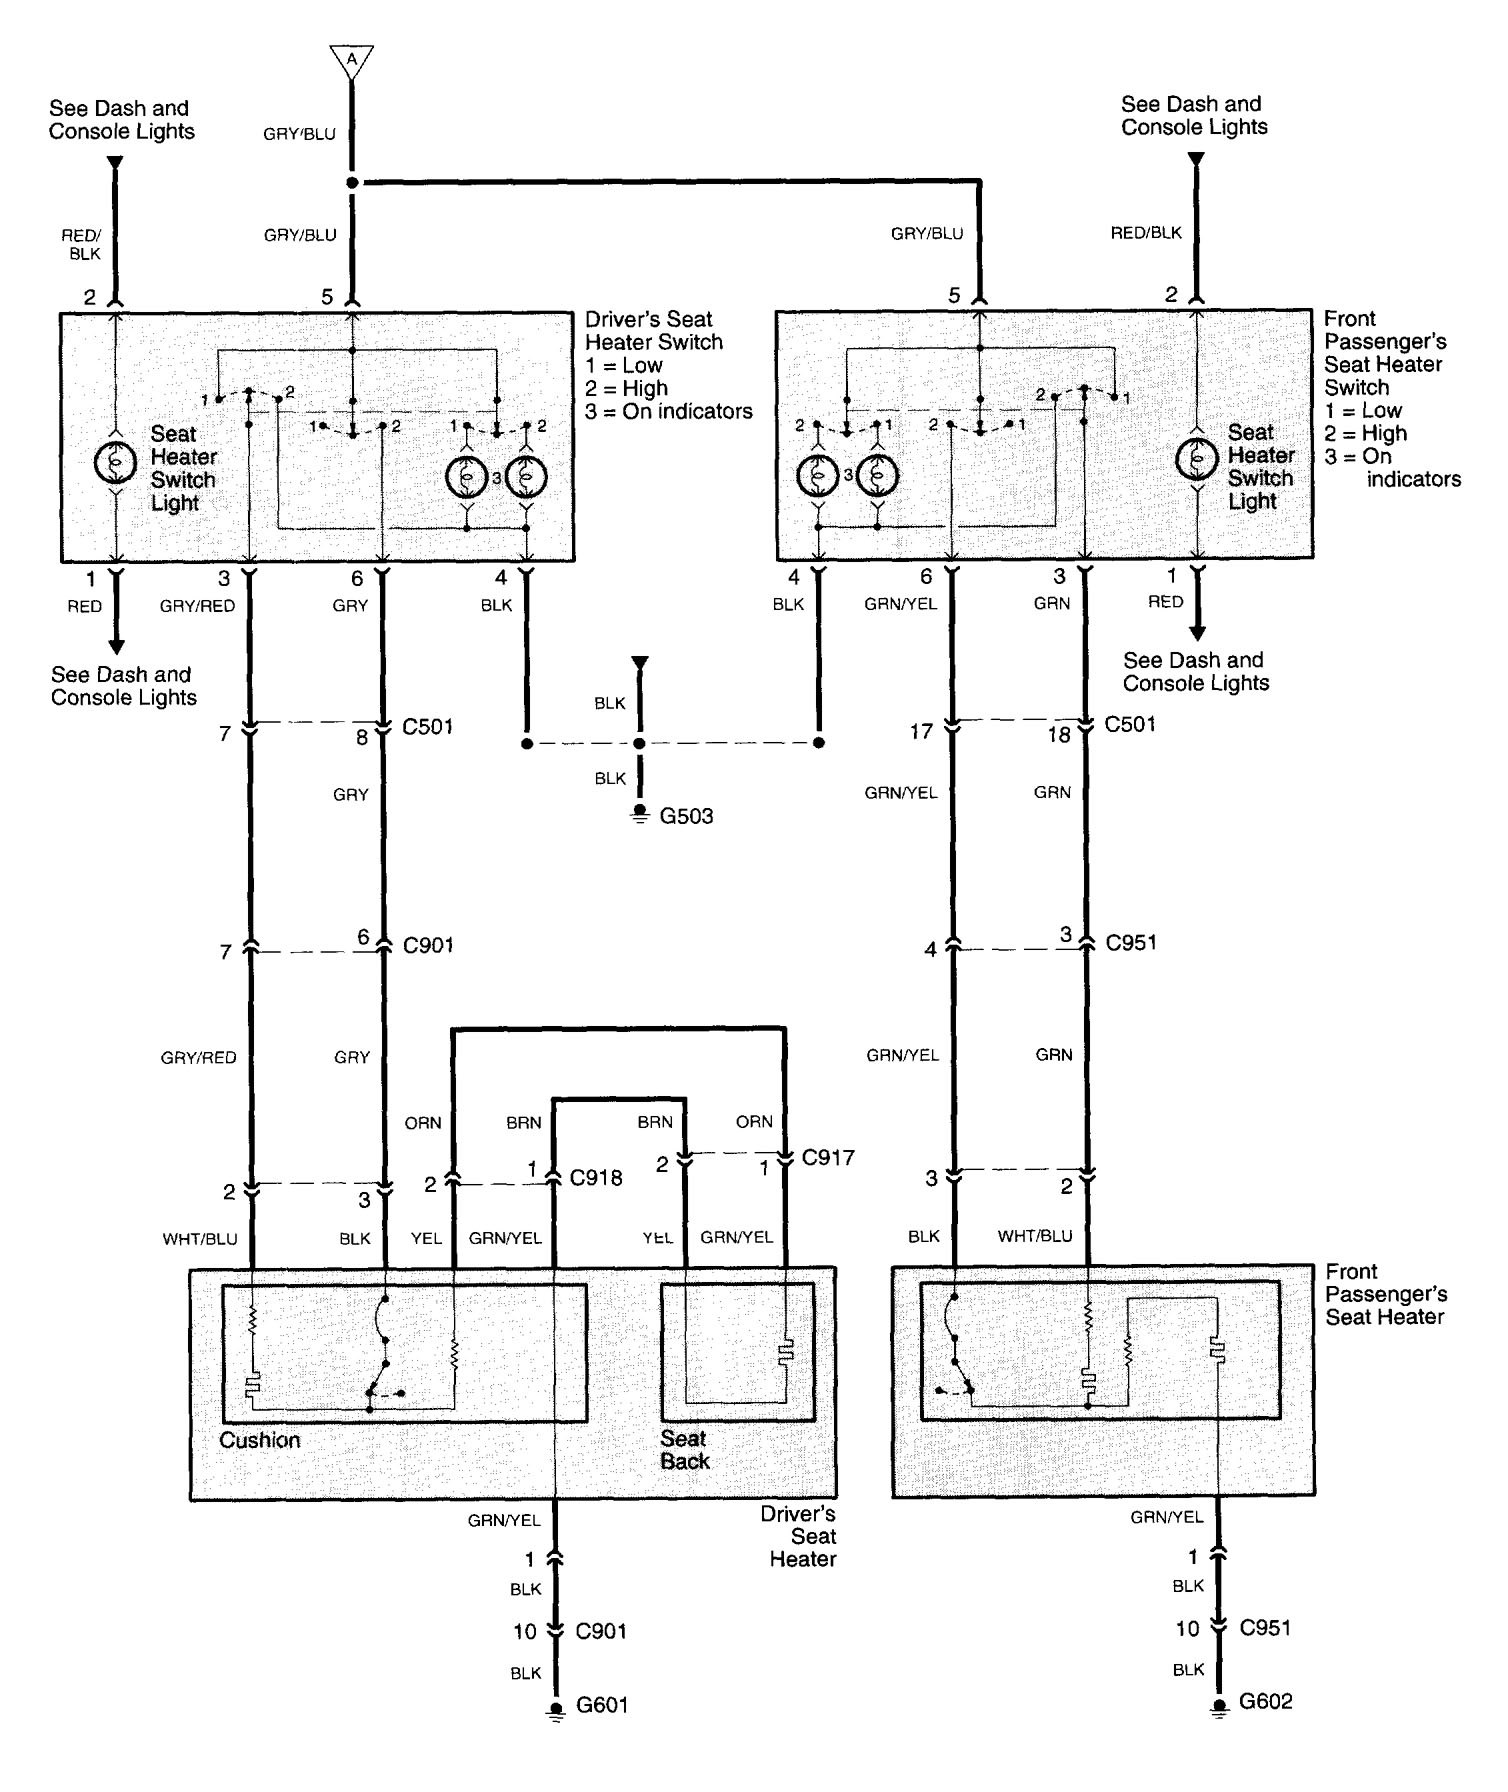 heated seat wiring diagram 2006 cobalt  u2022 wiring diagram